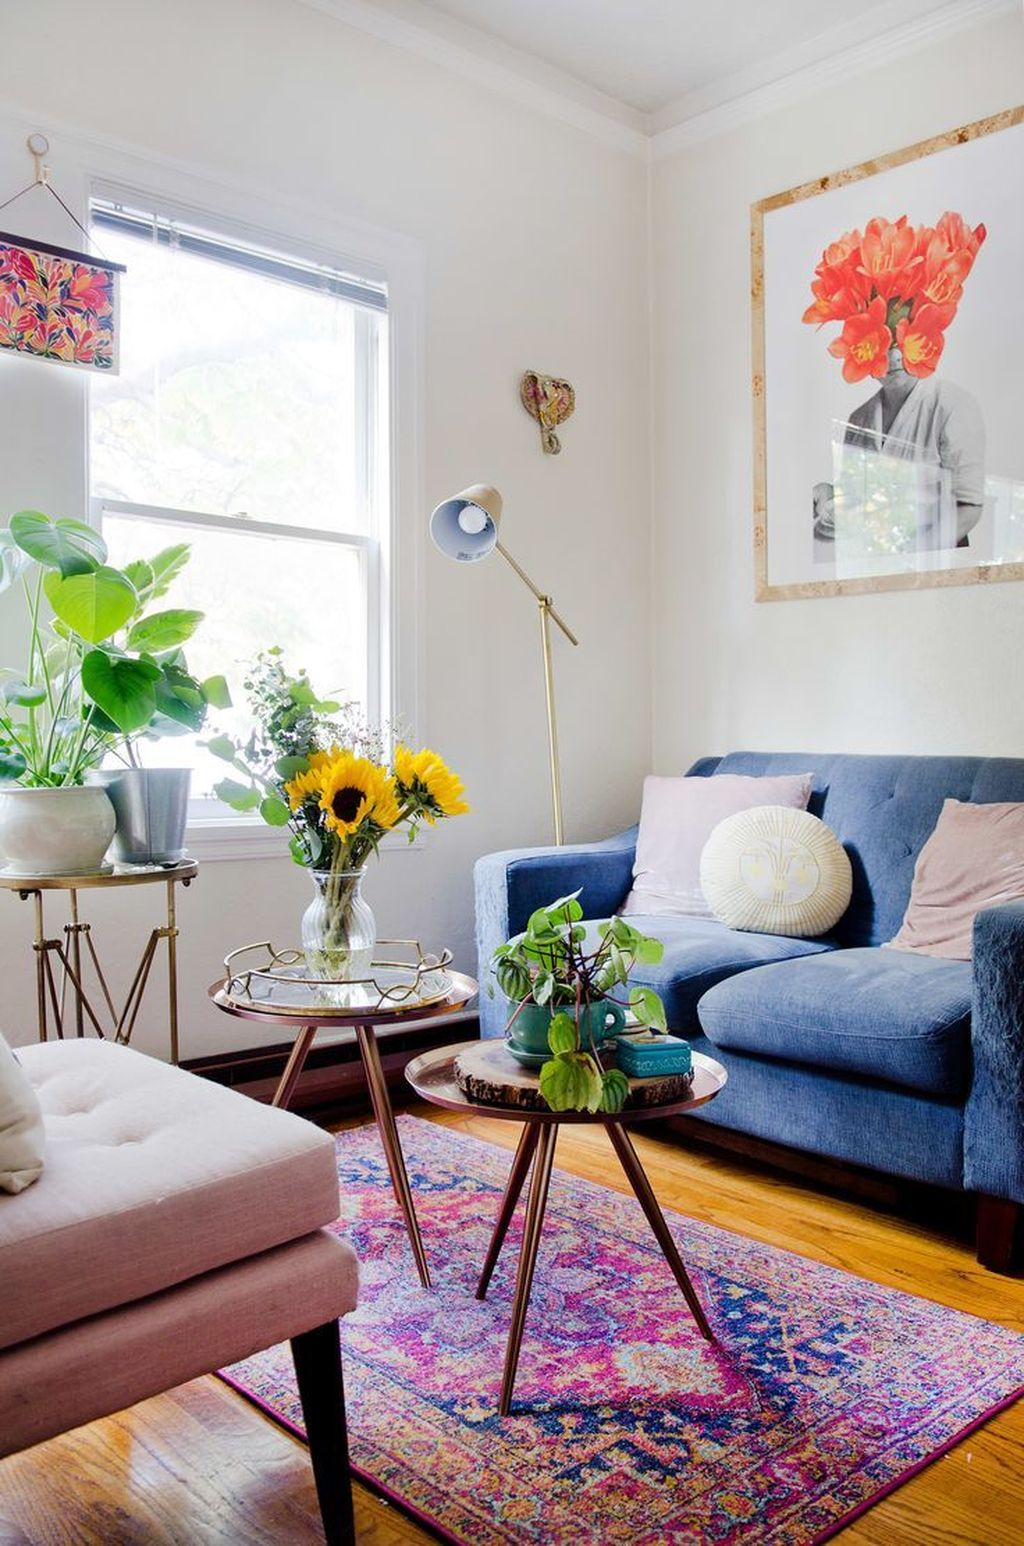 Amazing Floral Living Room Decor Ideas That You Will Love 16